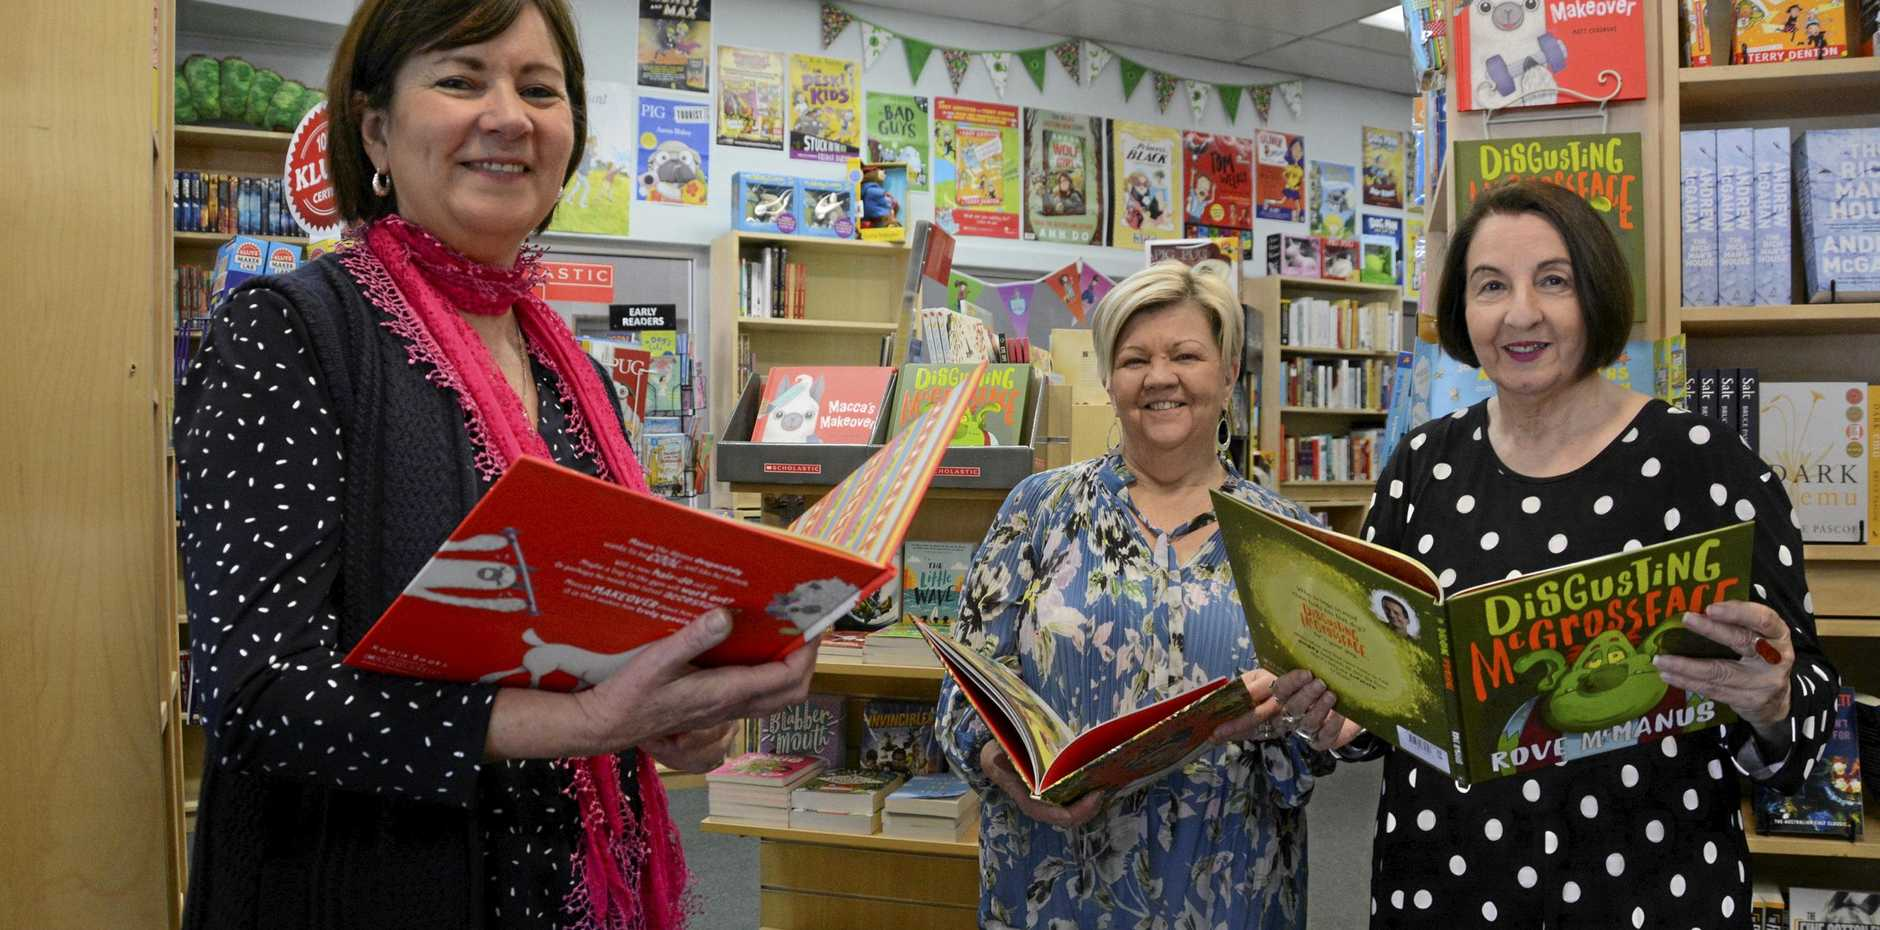 GOOD READS: Life-long fans of reading are (from left) The Book Tree owner Ann Hewitt, staff member Coleen Craddock and loyal customer Josephine Rice.